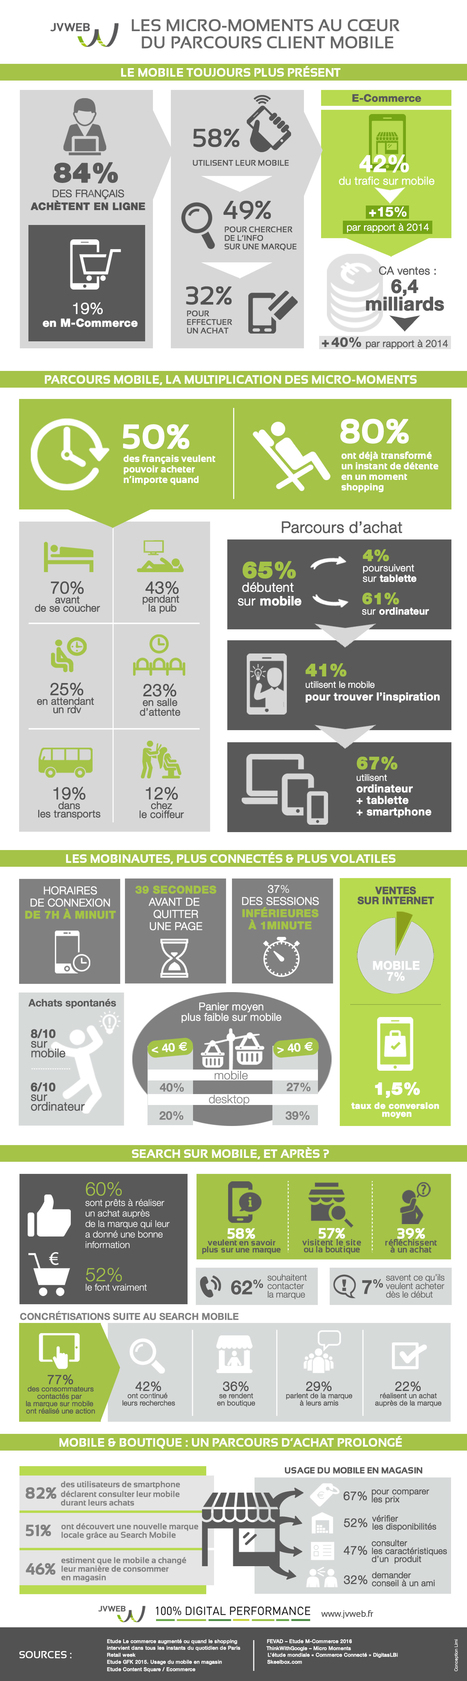 [Infographie] Le wait marketing ou les ''micro-moments'' sur mobile [prepa #rr20 30/01/2017] | Radio 2.0 (En & Fr) | Scoop.it